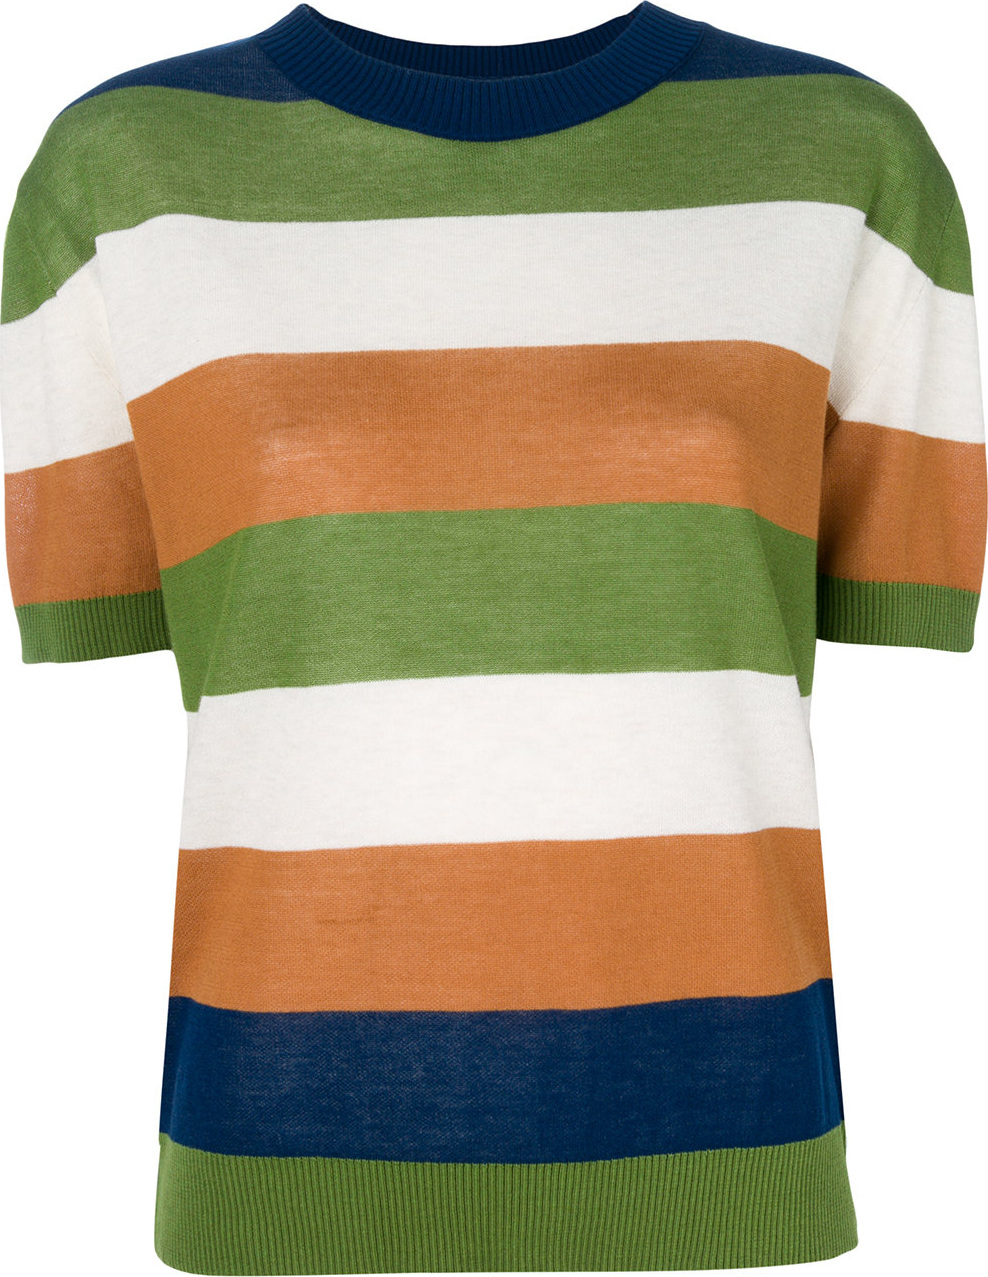 Marni - Knitted striped top